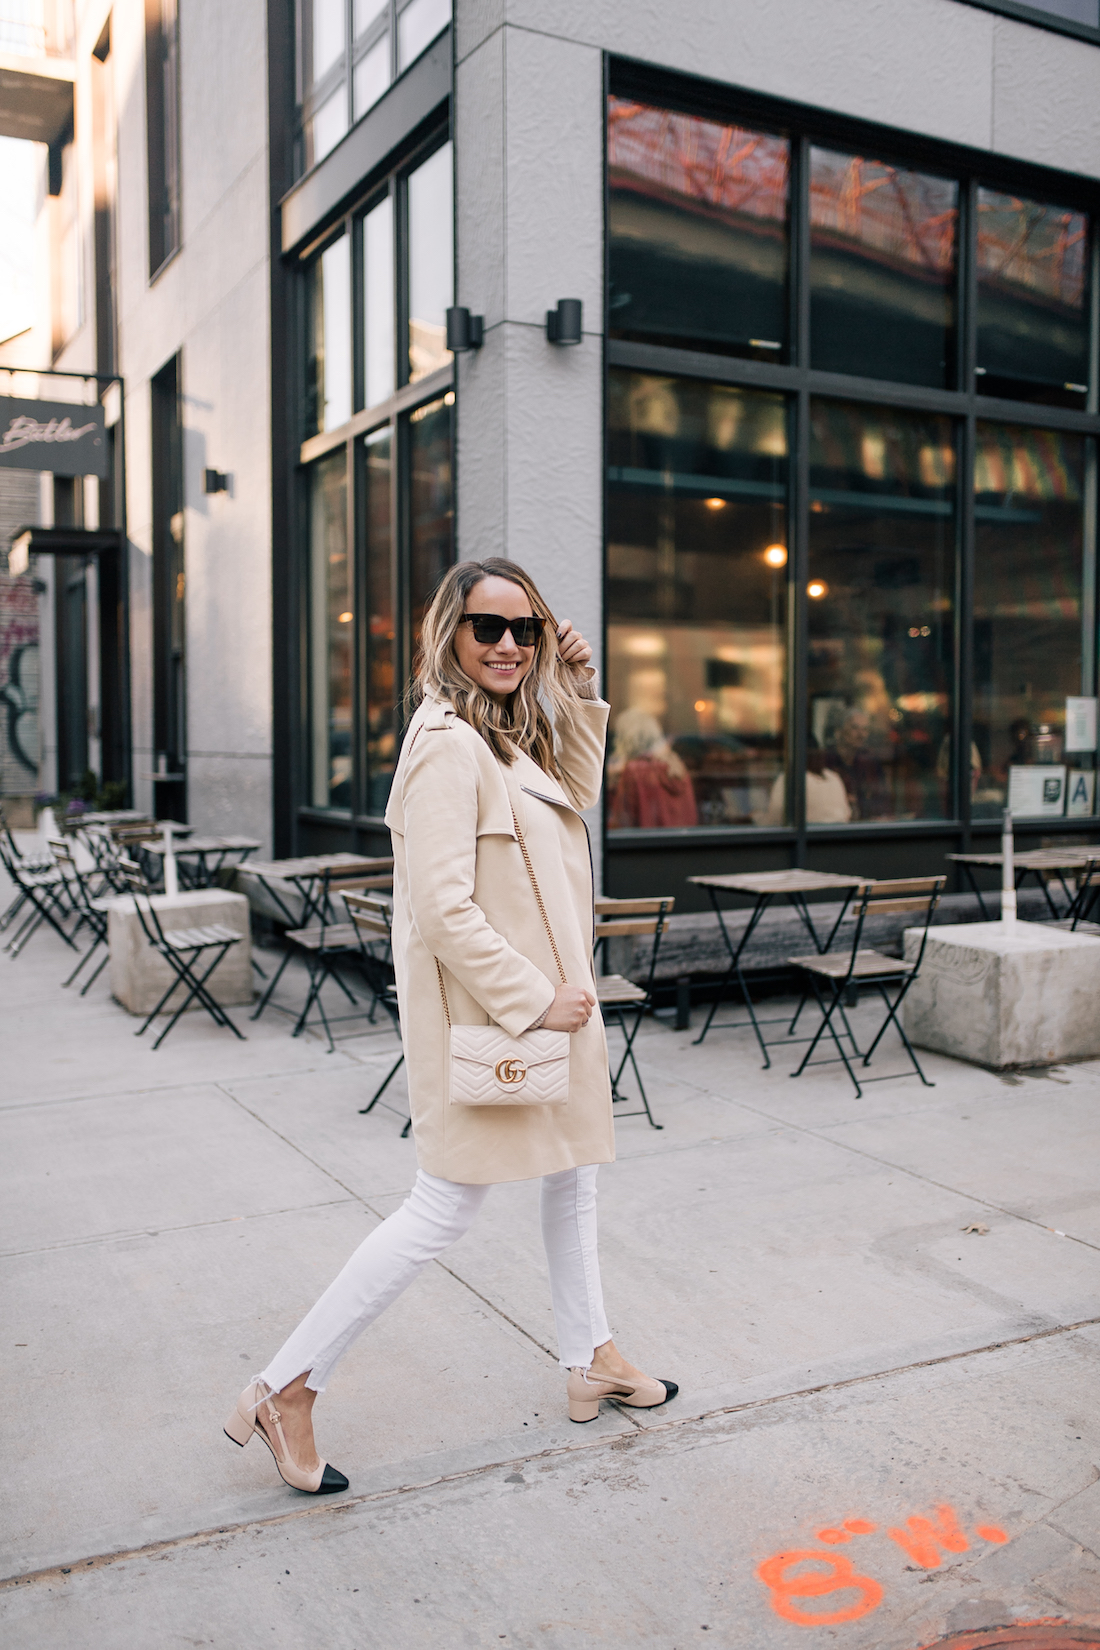 Outfit Details: Sandro Coat // ASOS Sweater // 7 for all Mankind Jeans // Sam Edelman Heels // Celine Sunglasses // Gucci Purse